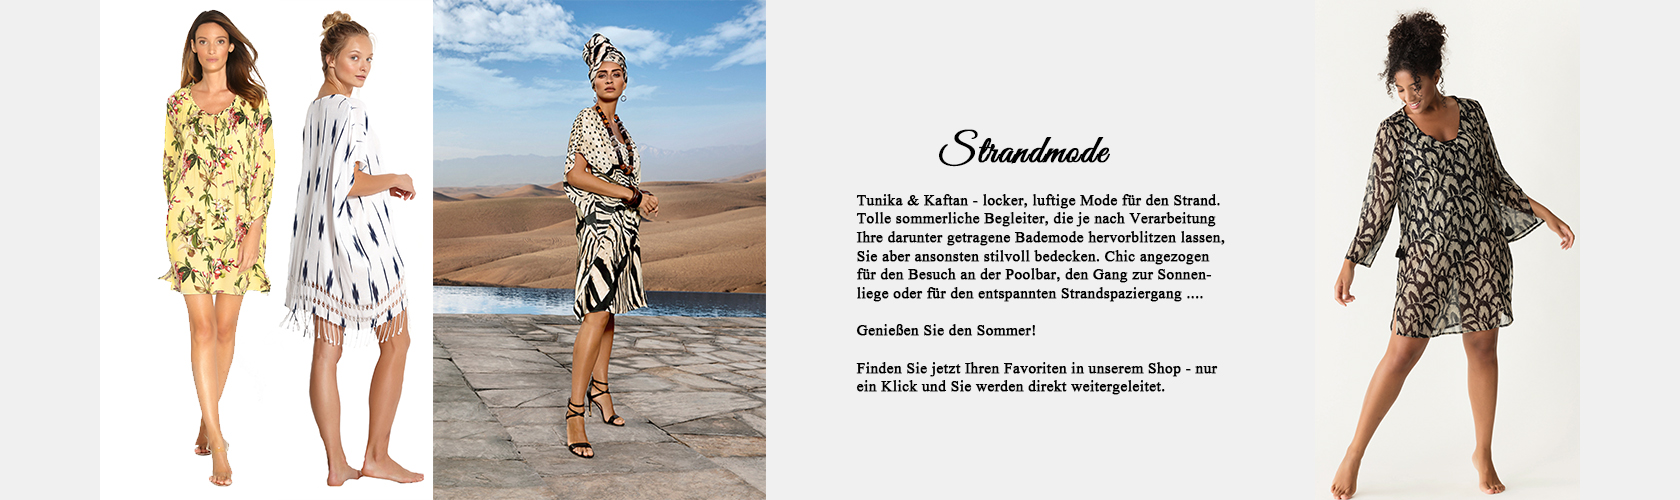 Slideshow Thema TUNIKEN & KAFTAN 12.07.